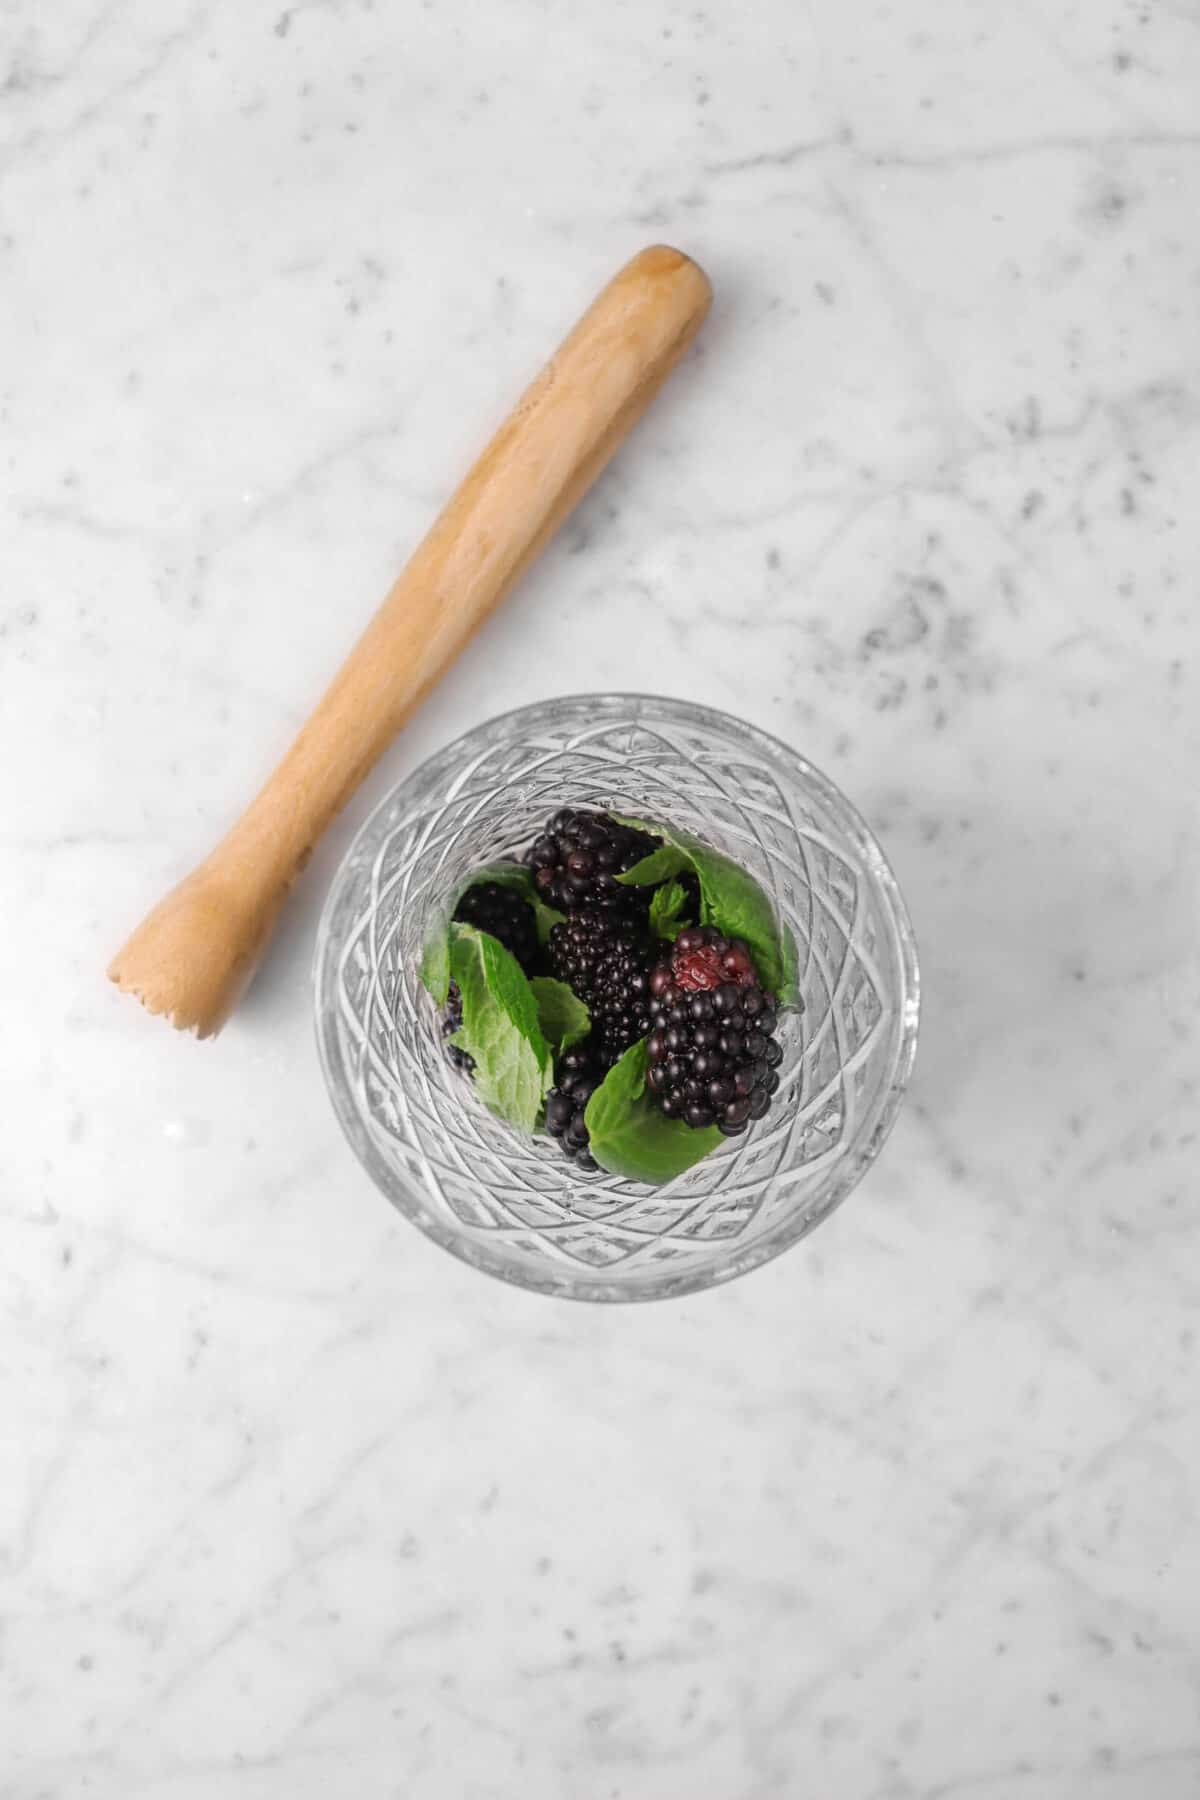 blackberries and mint in a glass with a wood muddler